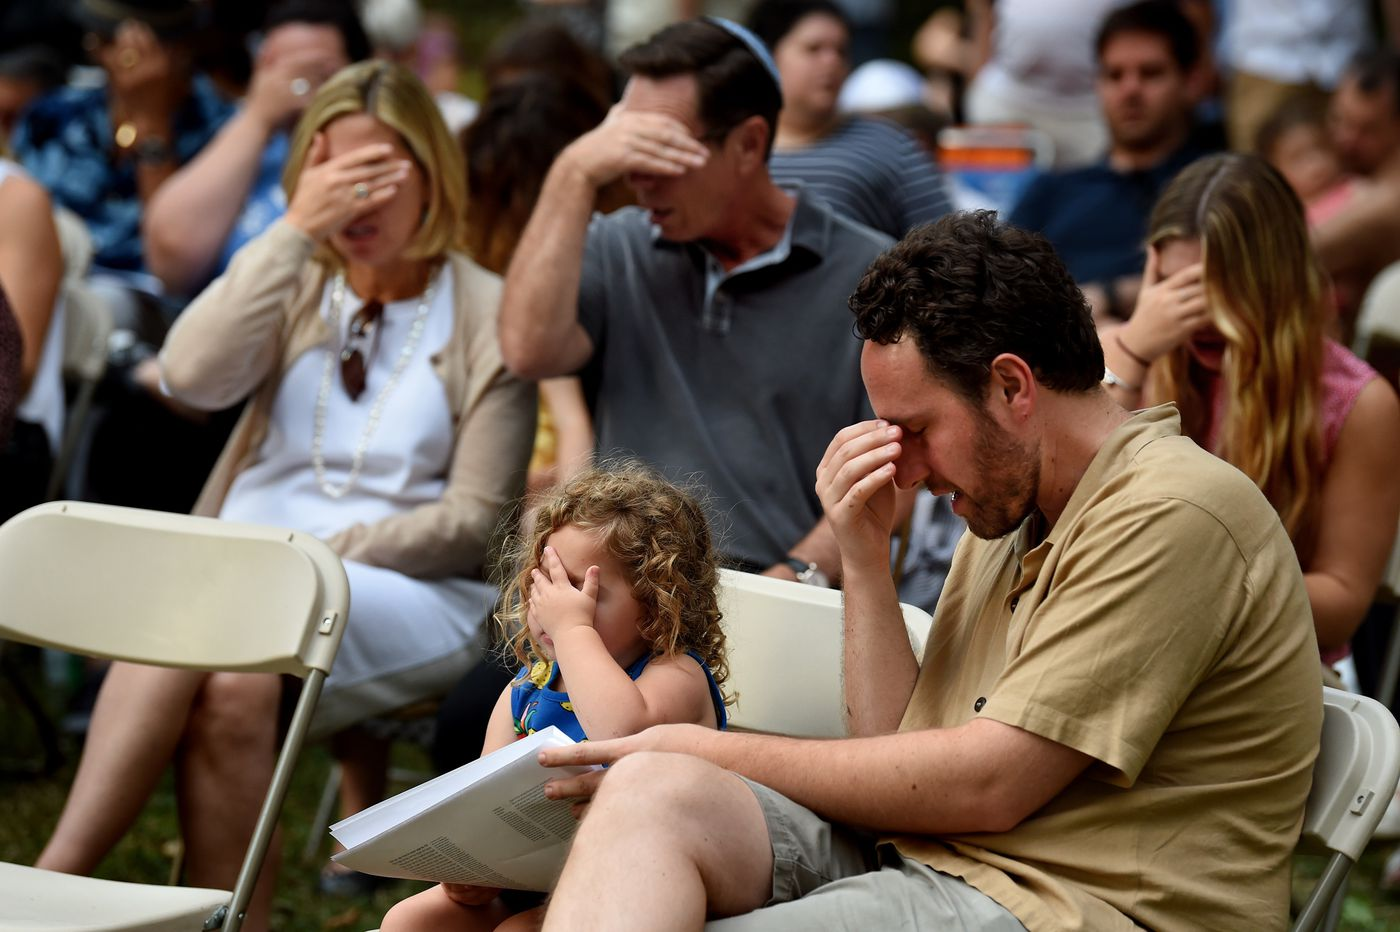 A Service in the Square: Celebration marks Rosh Hashanah in Rittenhouse